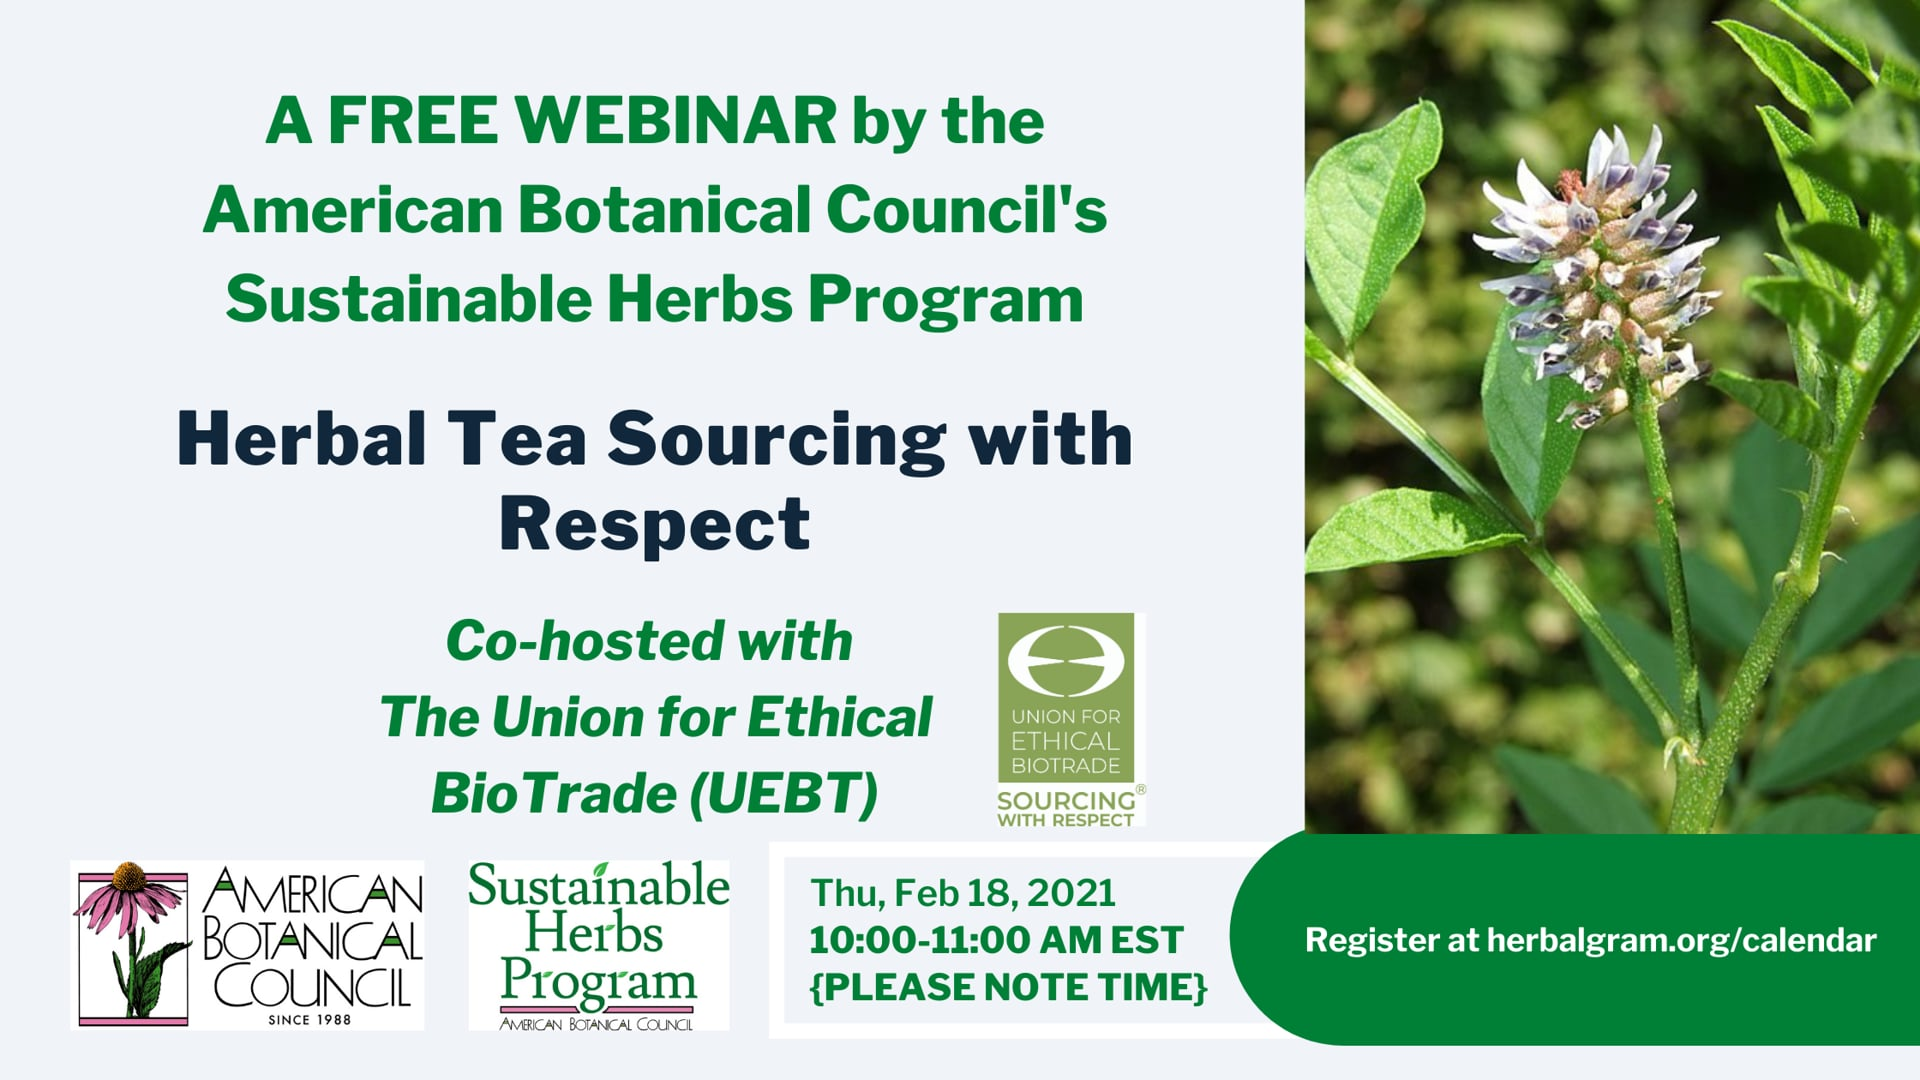 Herbal Tea Sourcing with Respect